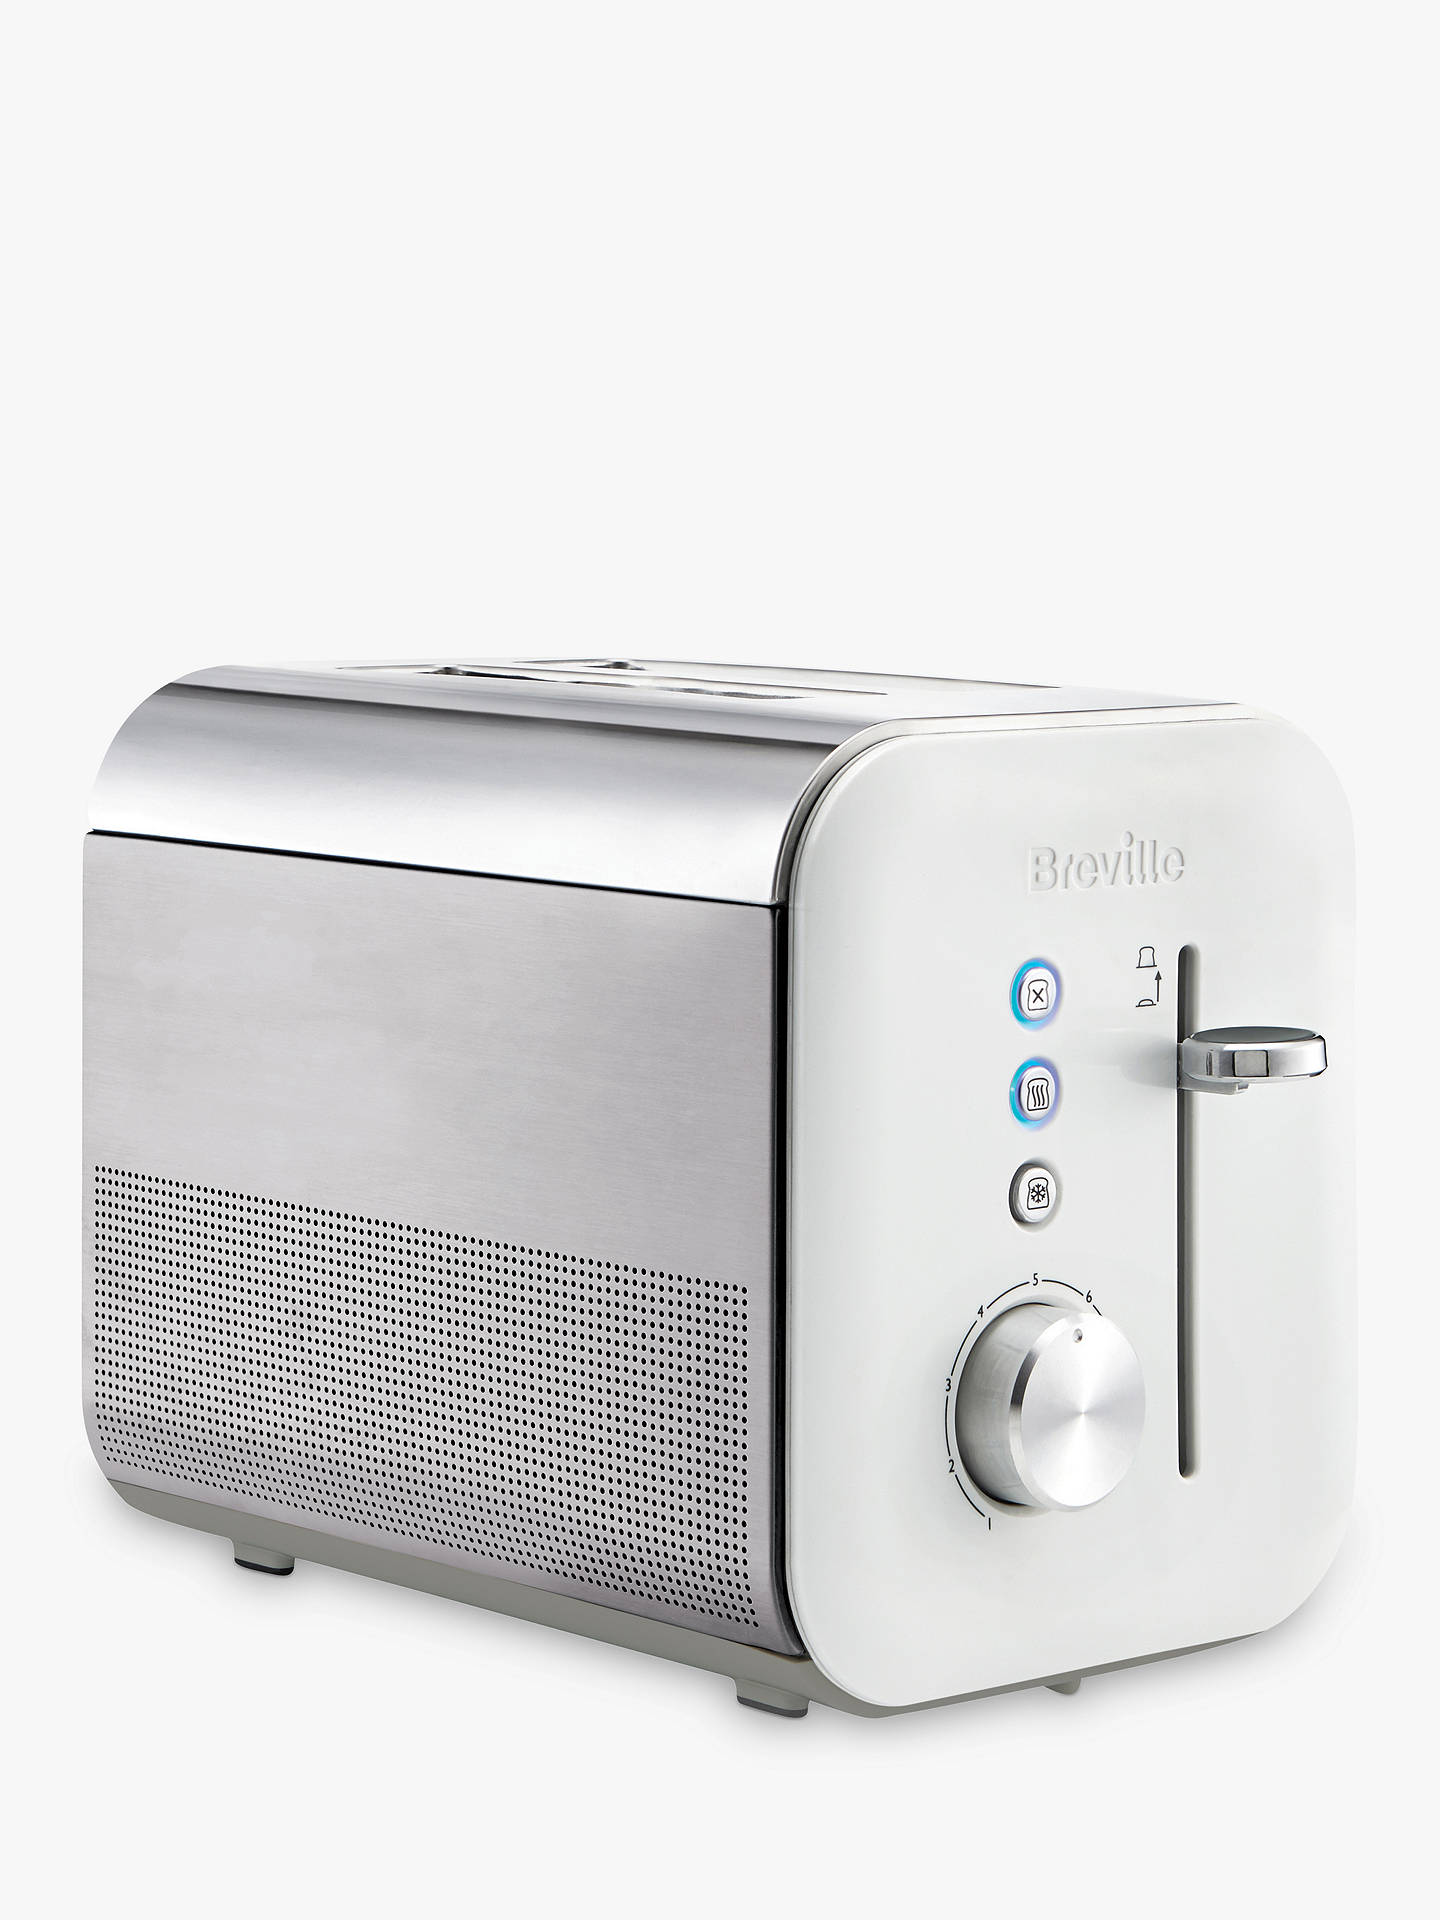 Buy Breville VTT686 High Gloss 2-Slice Toaster, White Online at johnlewis.com